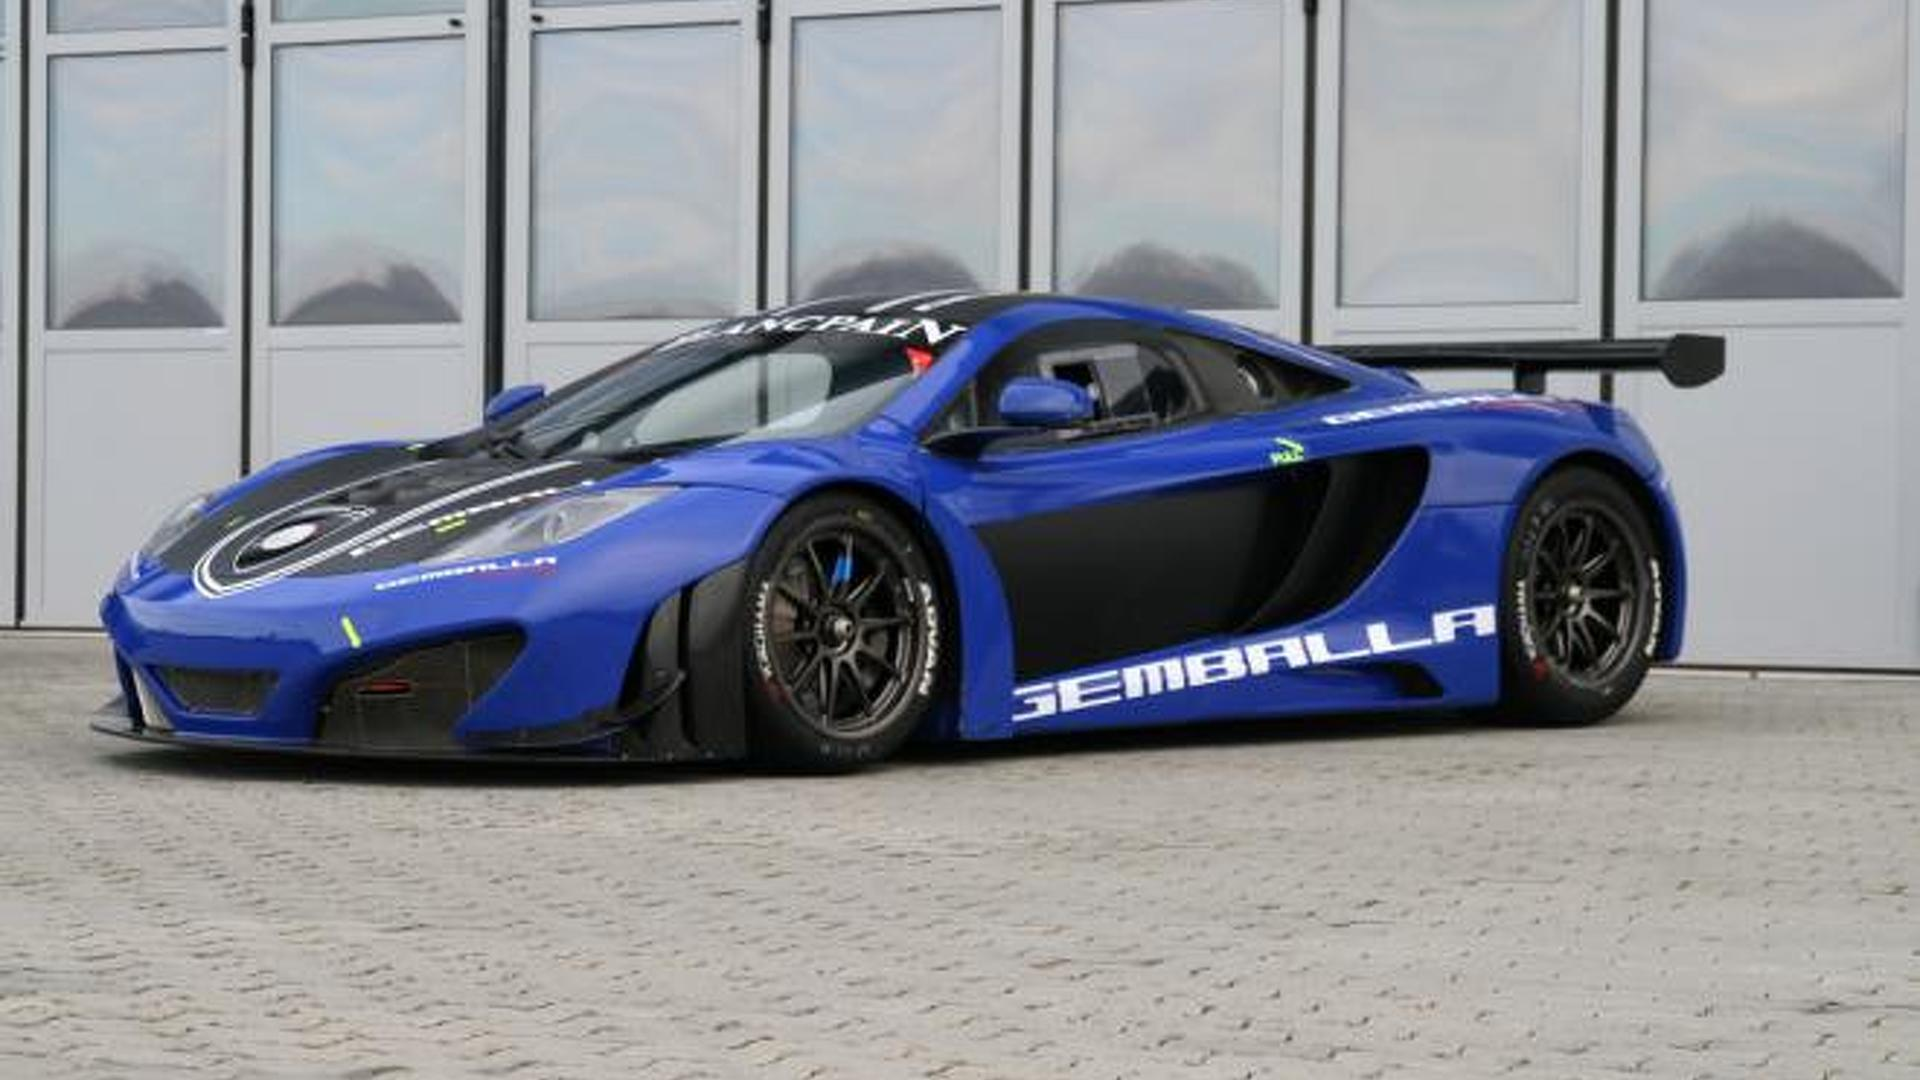 2012 McLaren MP4-12C GT3 by Gemballa Racing up for sale